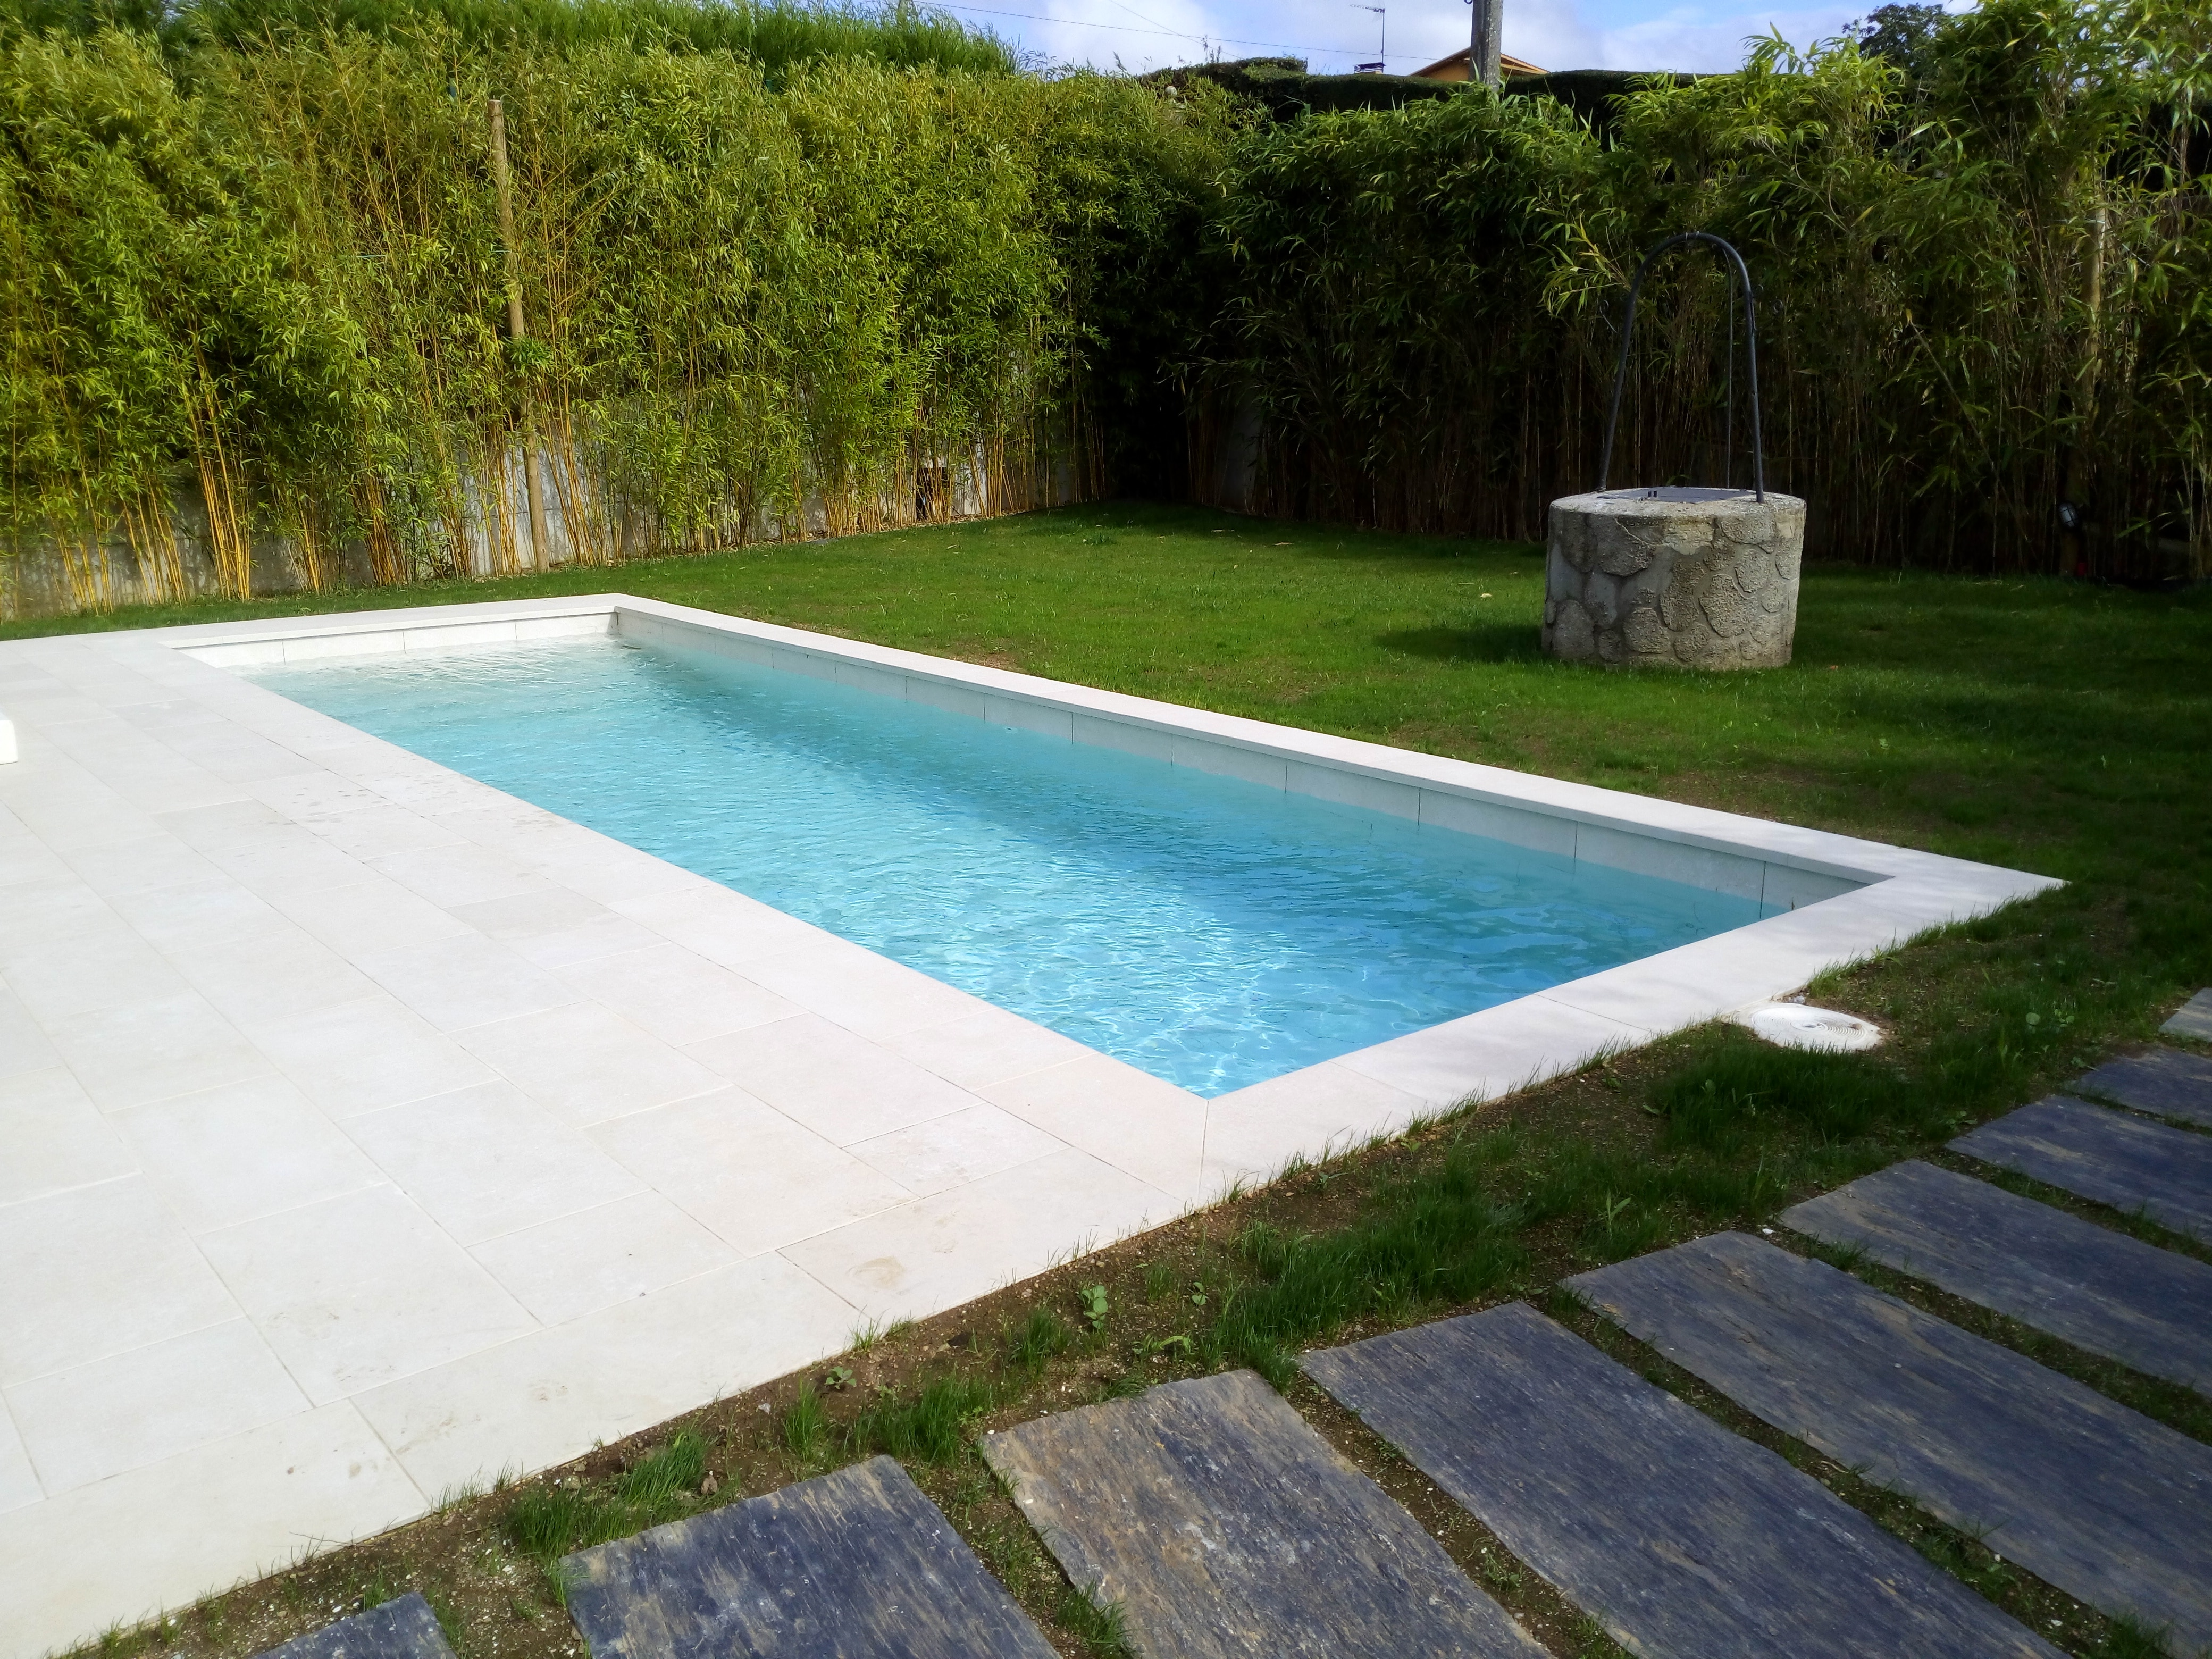 Como construir piscina de hormigon for Piscinas con gresite blanco